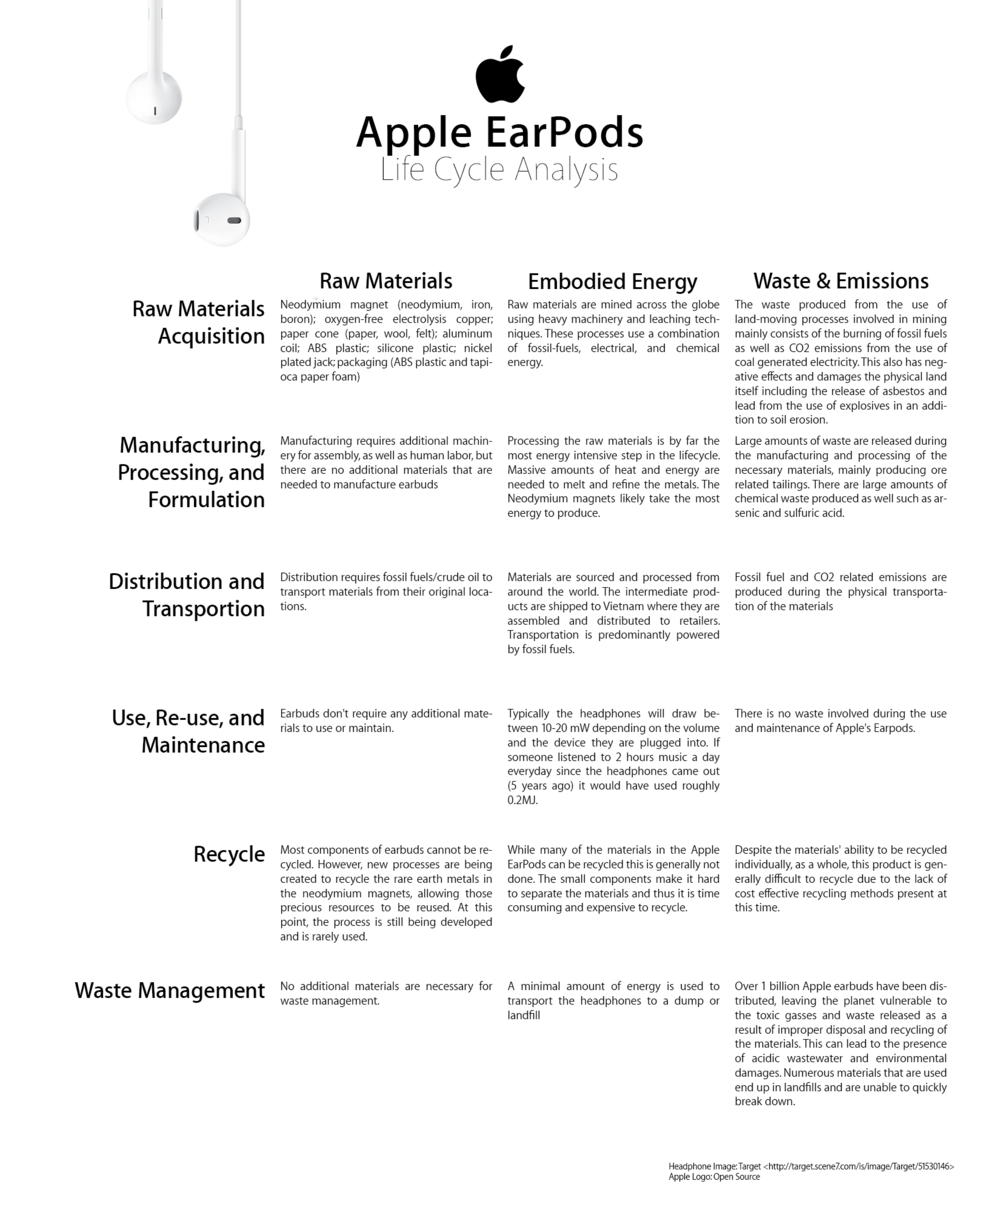 Apple EarPods Life Cycle